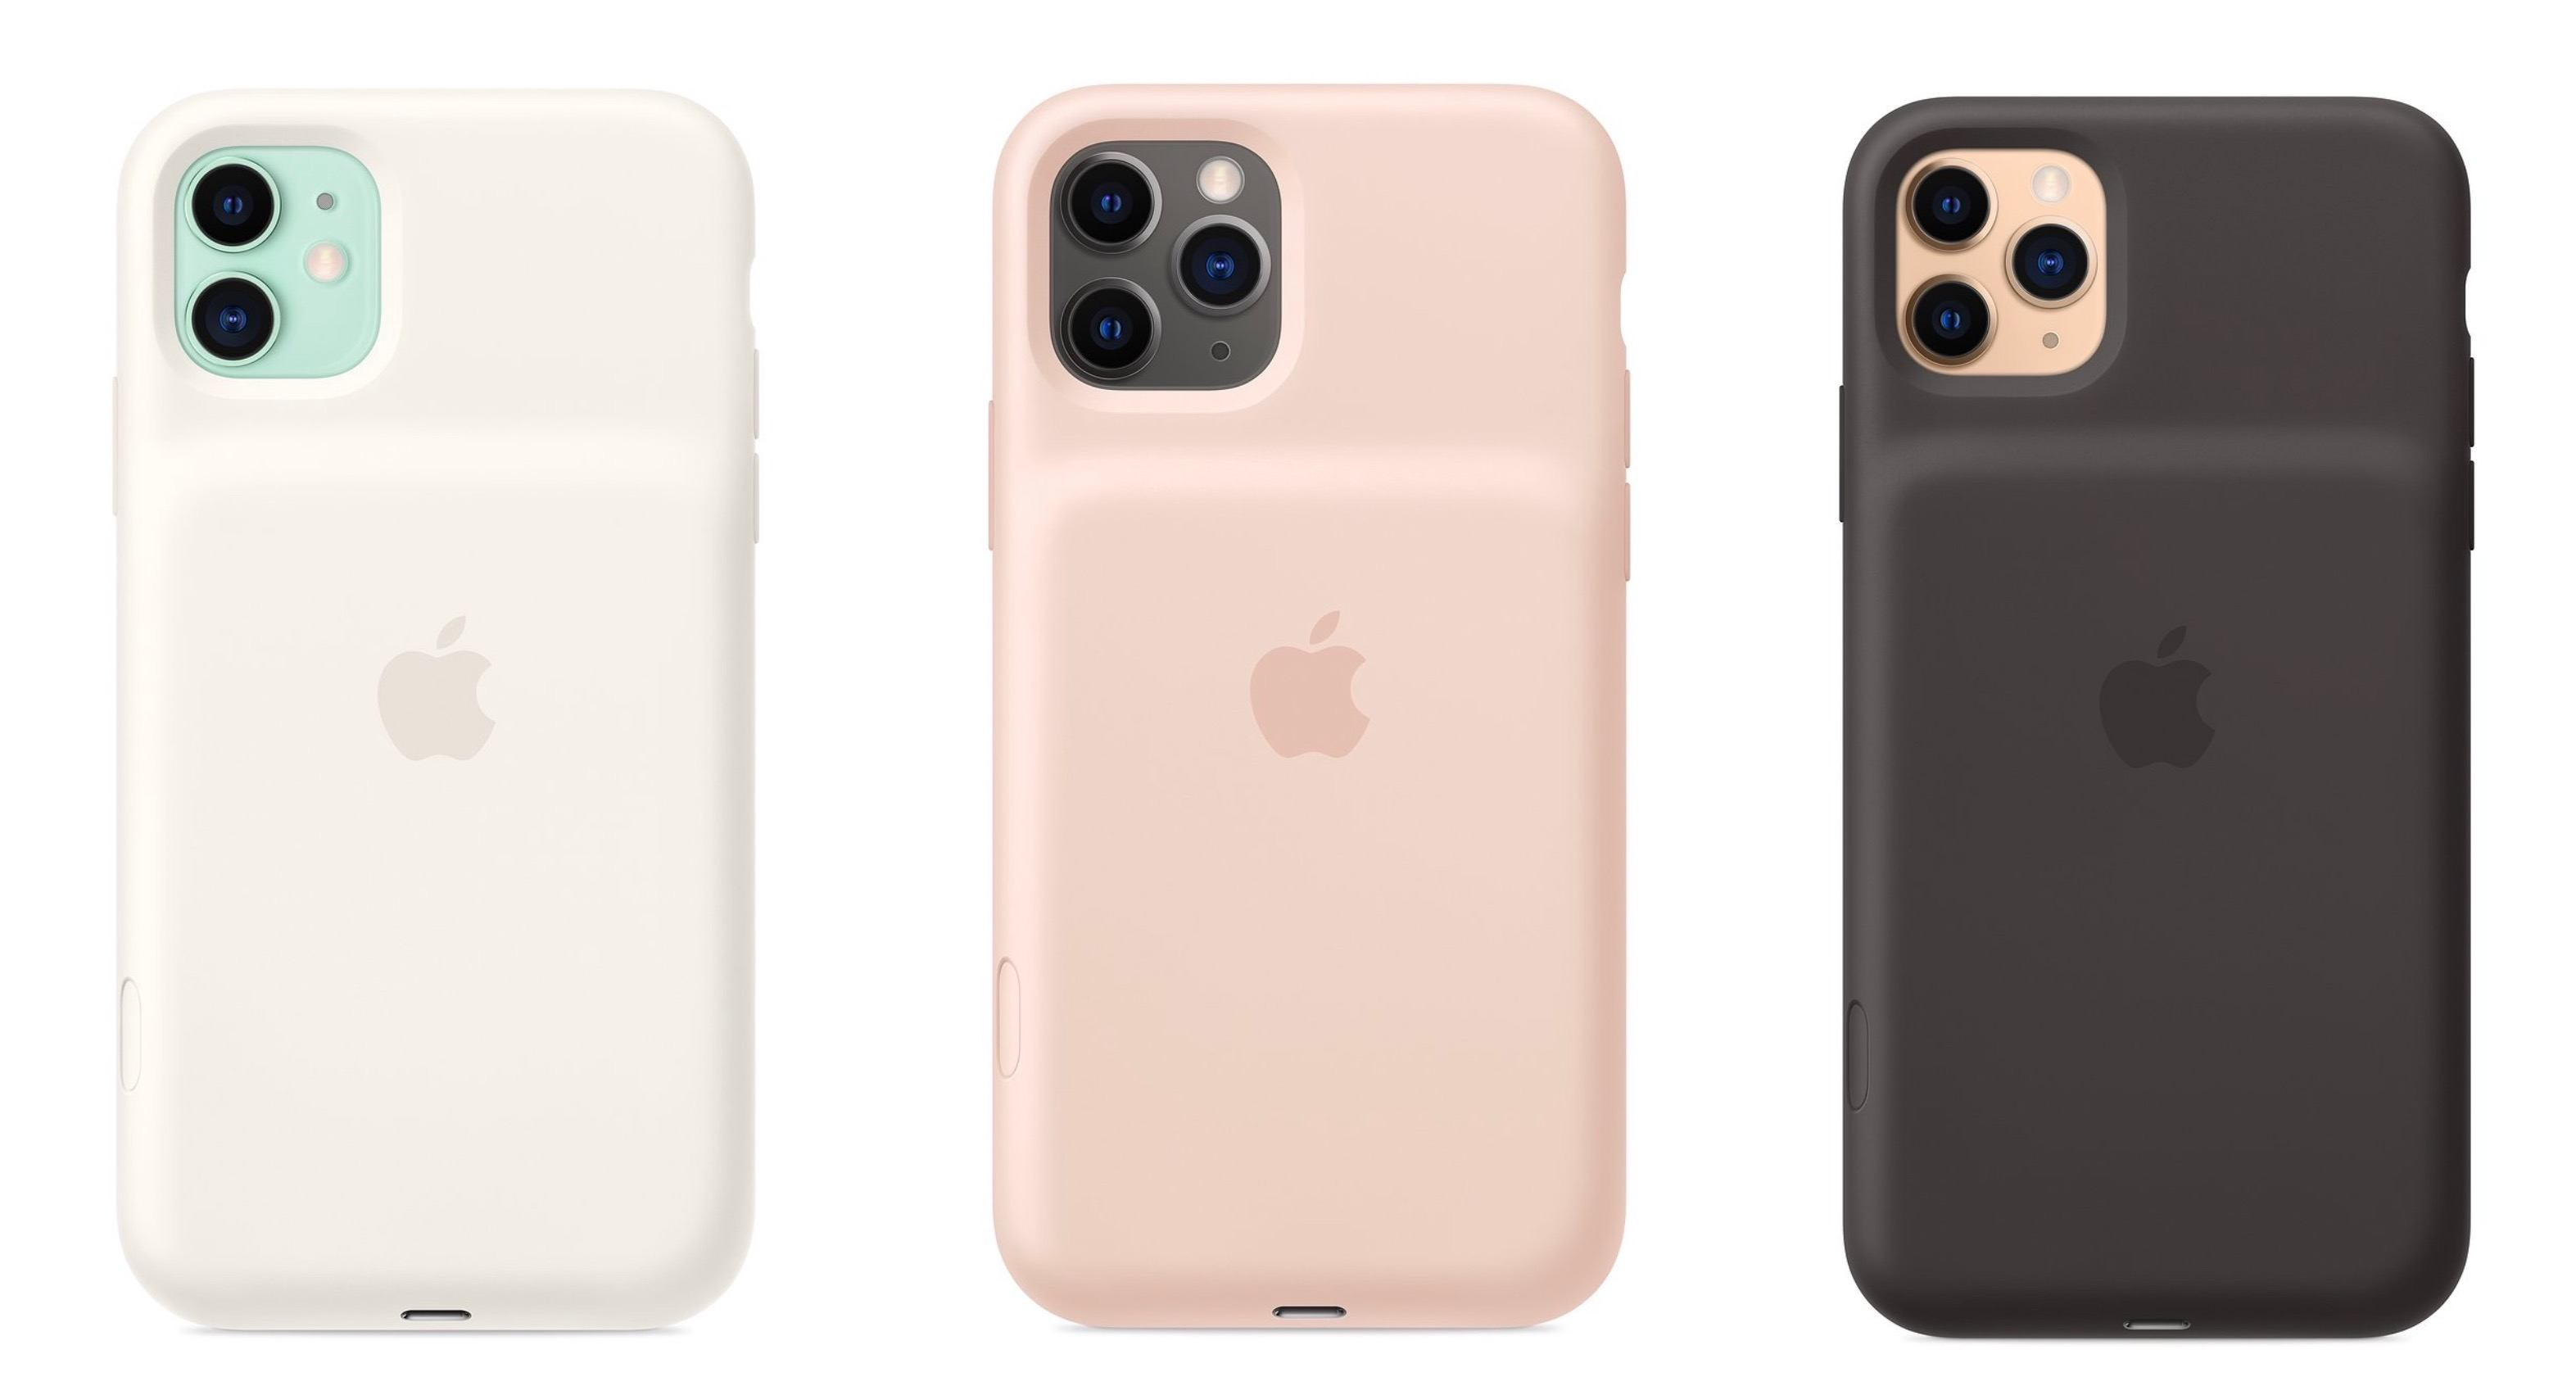 Apple Releases Smart Battery Case for iPhone 11 and 11 Pro with Dedicated Camera Button